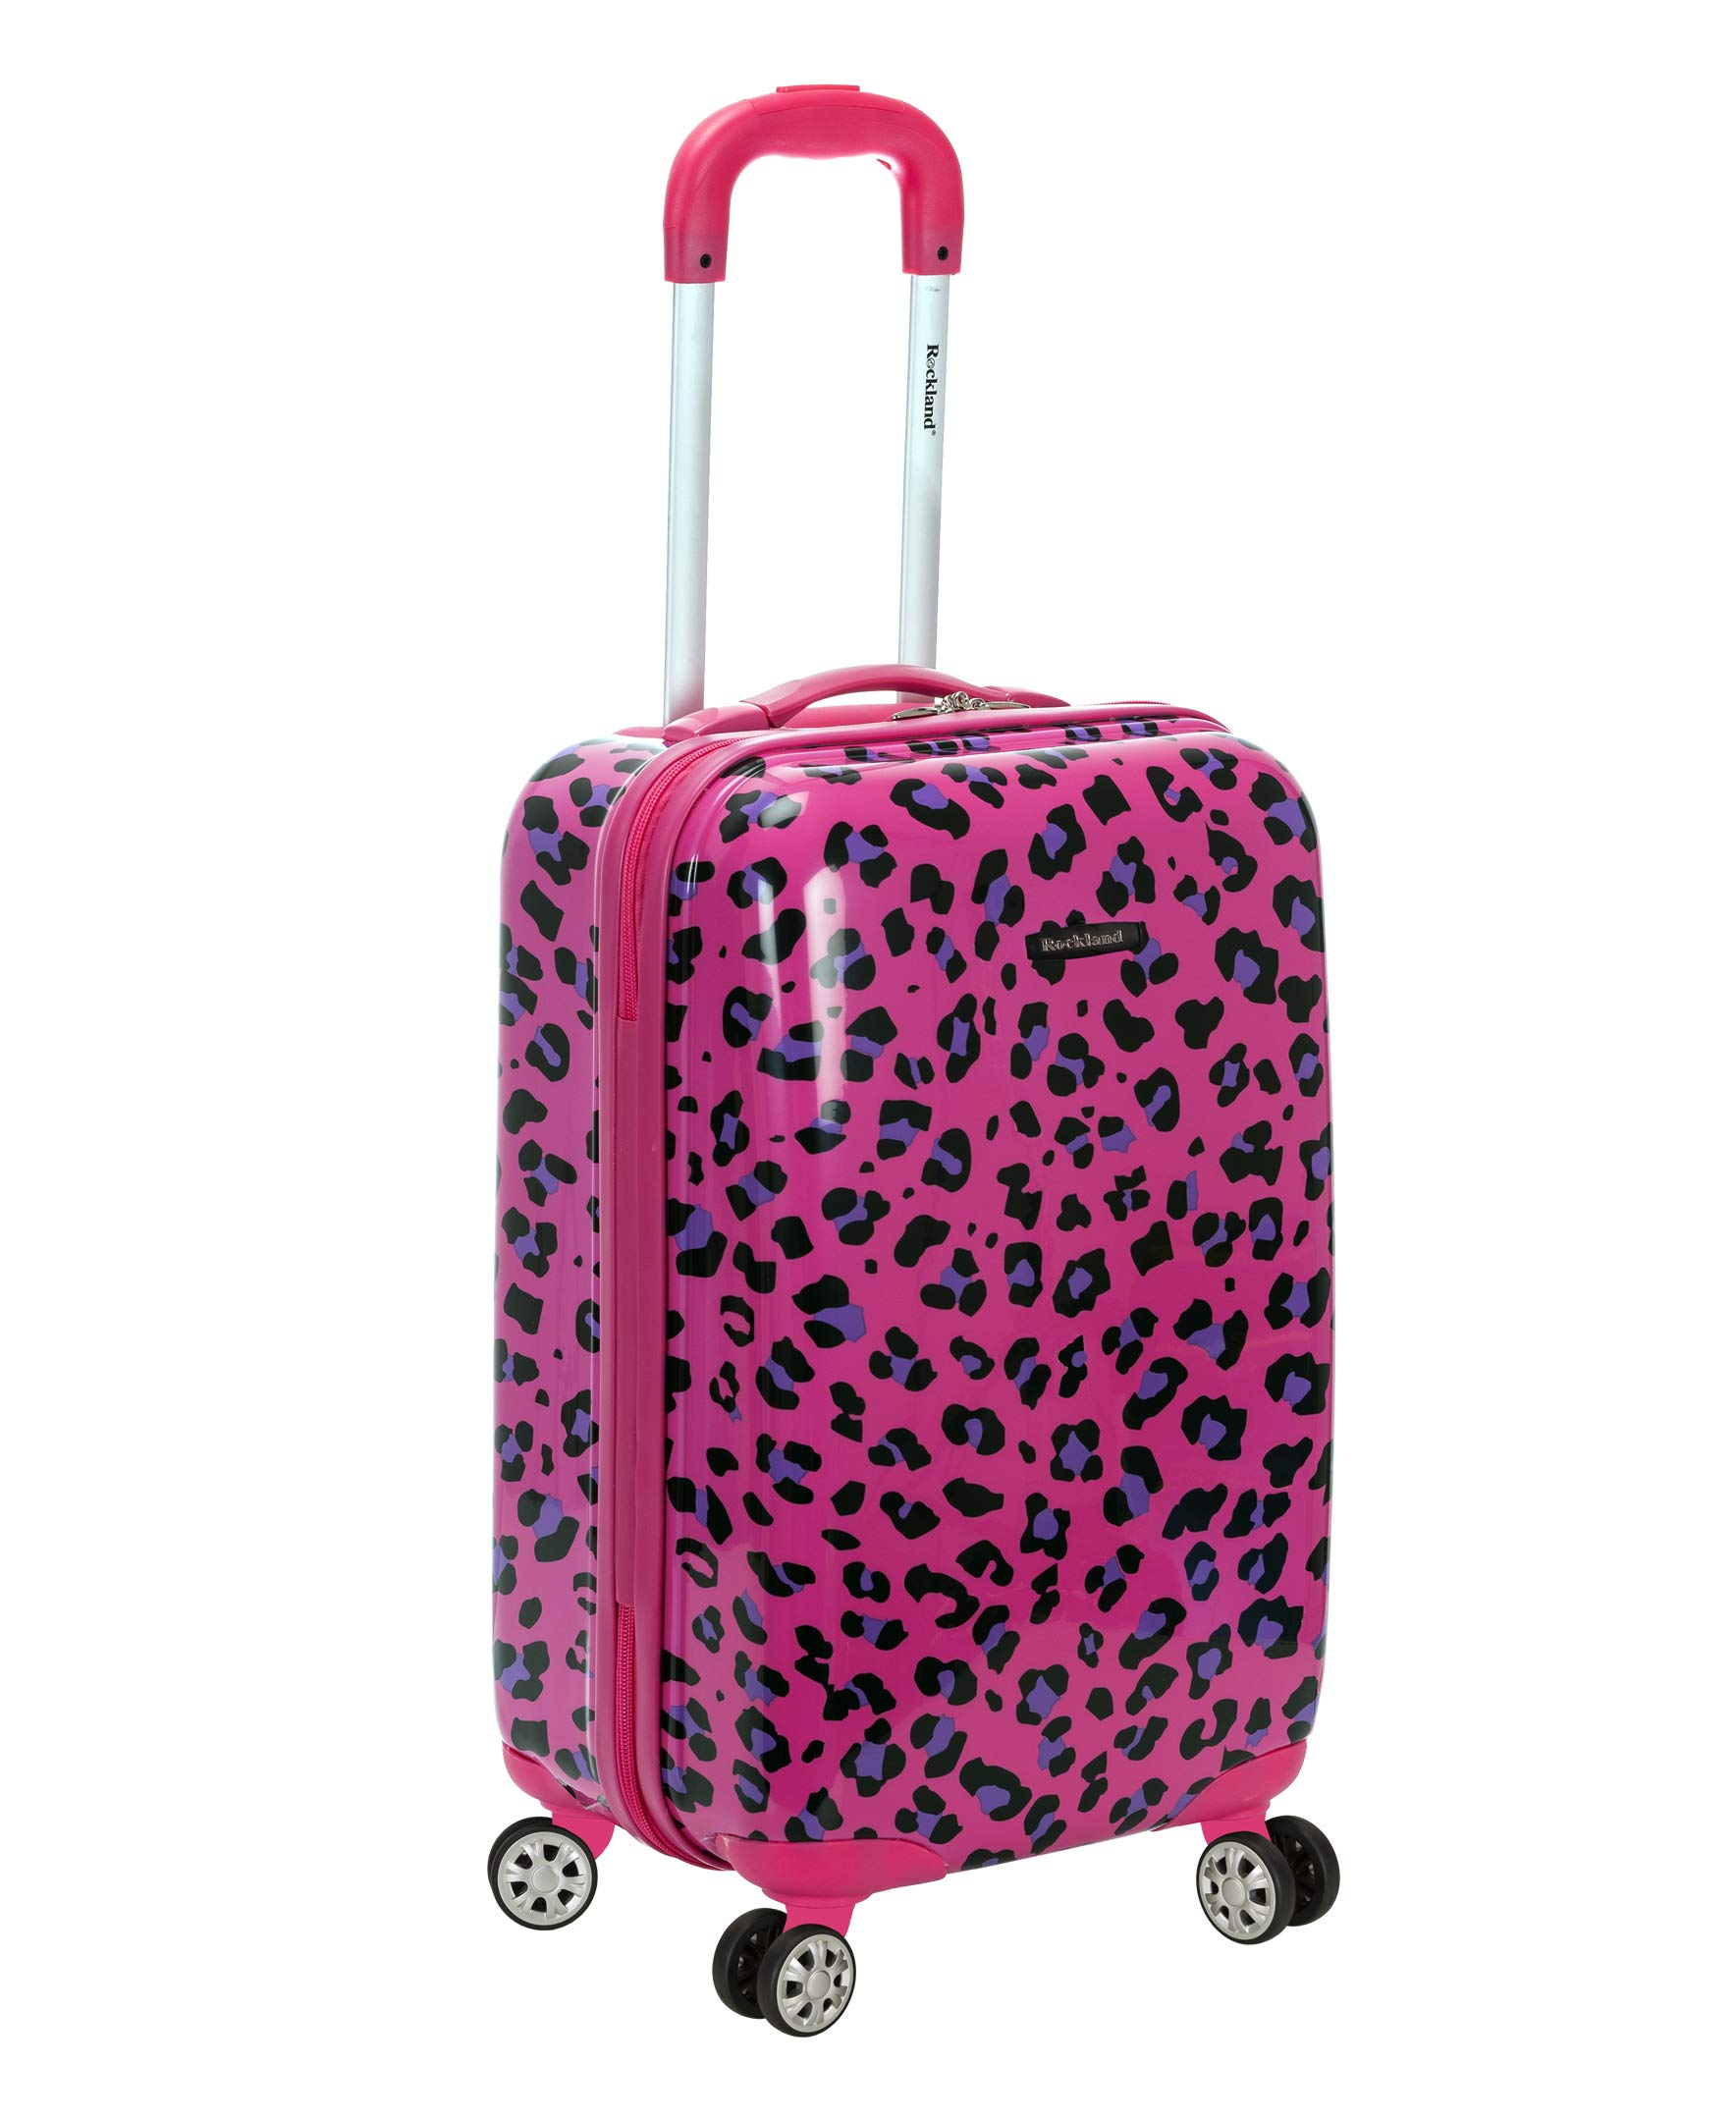 Rockland 20 Inch Carry On Skin, Magenta Leopard, One Size by Rockland